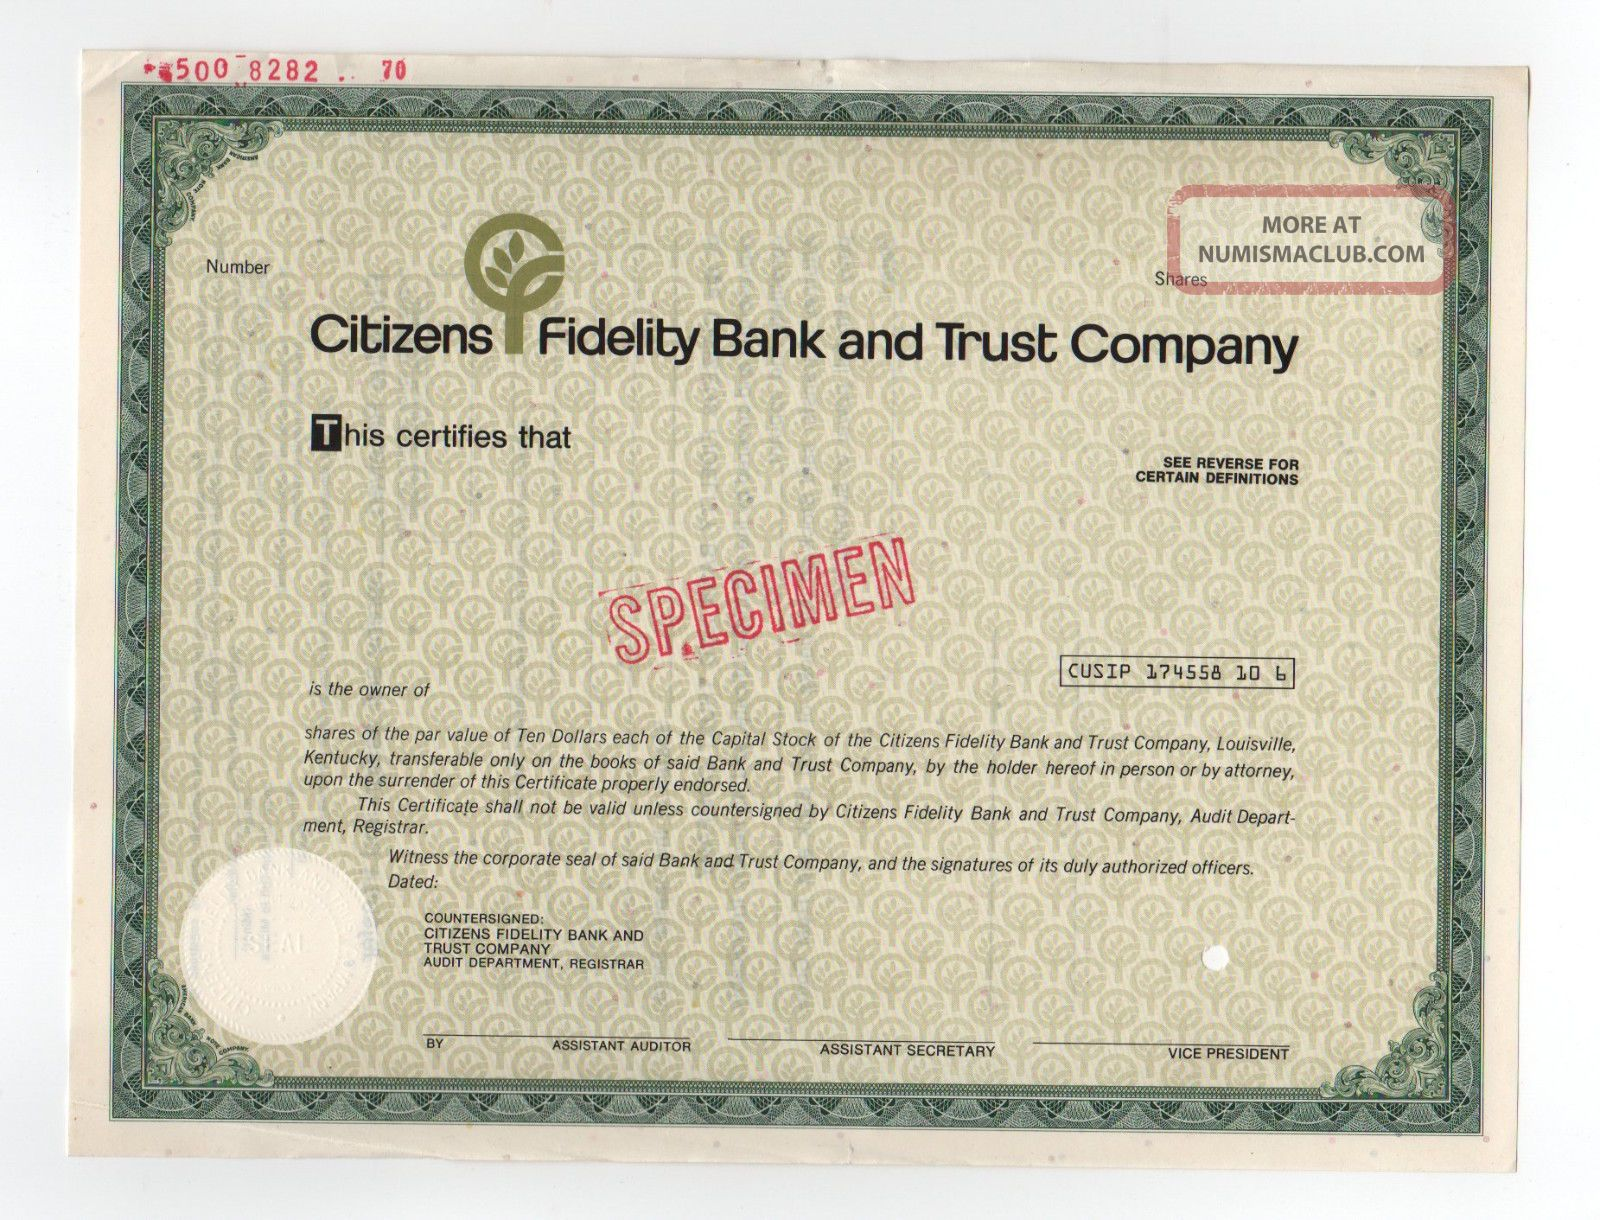 Specimen - Citizens Fidelity Bank And Trust Company Stock Certificate Stocks & Bonds, Scripophily photo